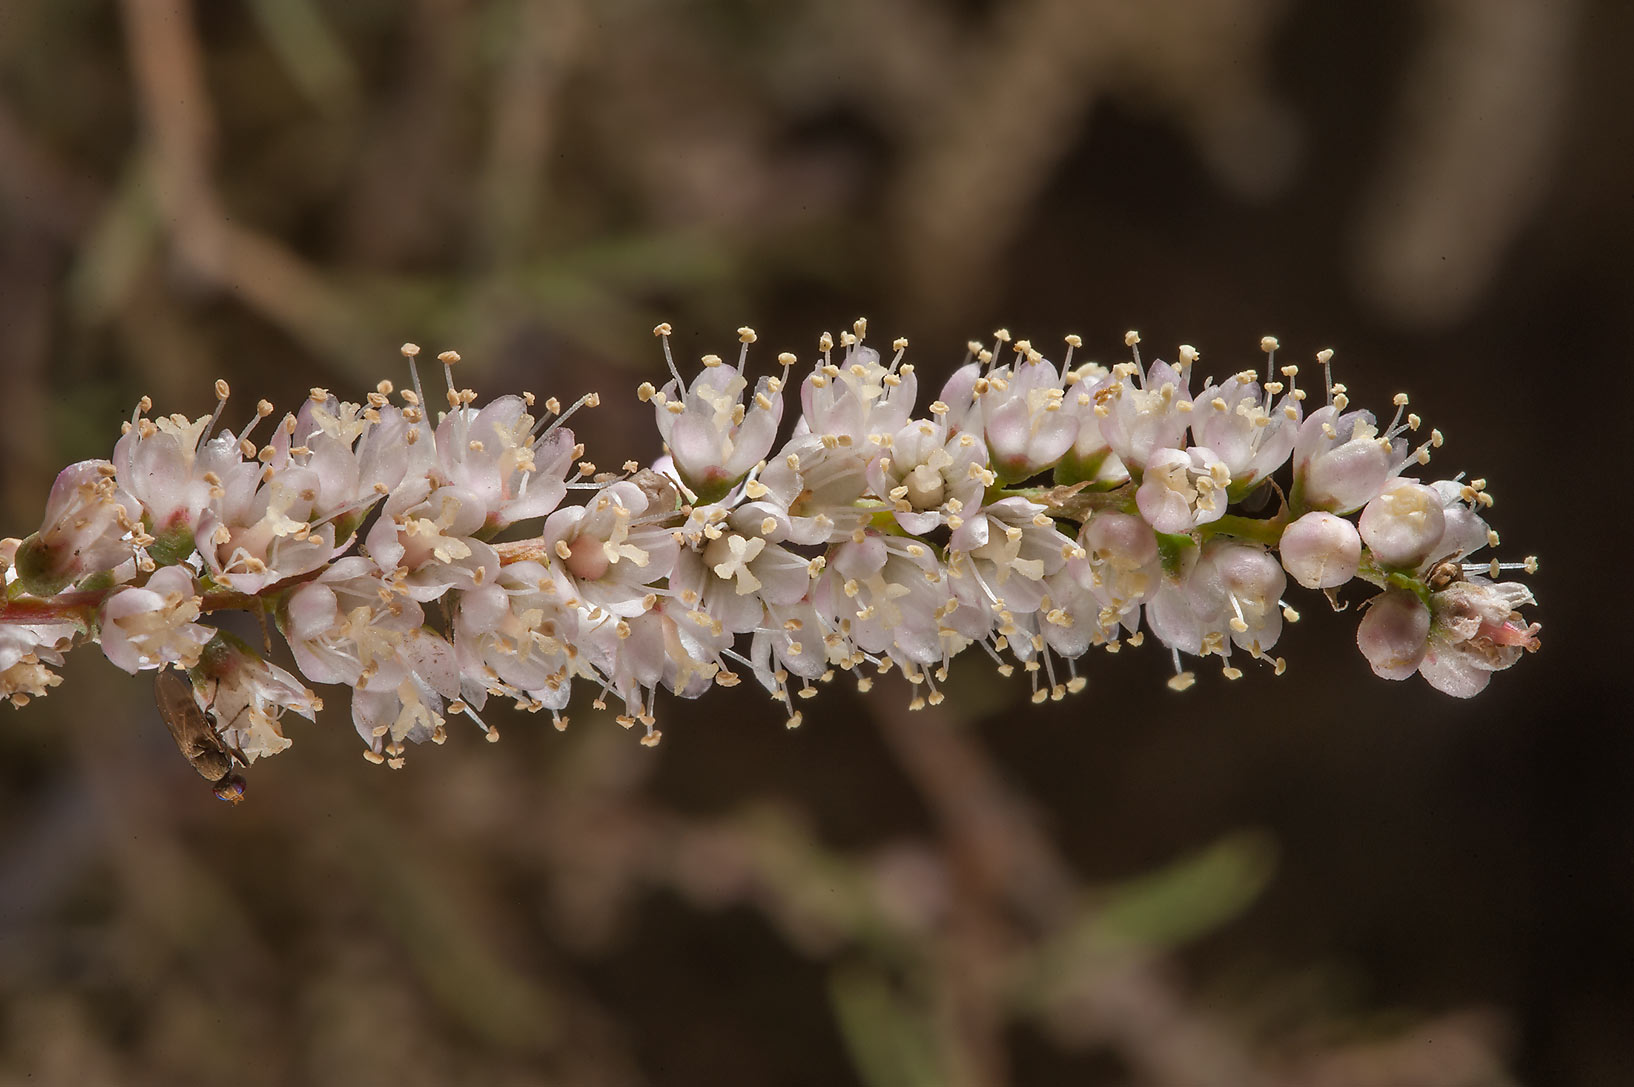 Tamarisk (Tamarix aphylla) in a roadside...water treatment plant. Al Khor, Qatar